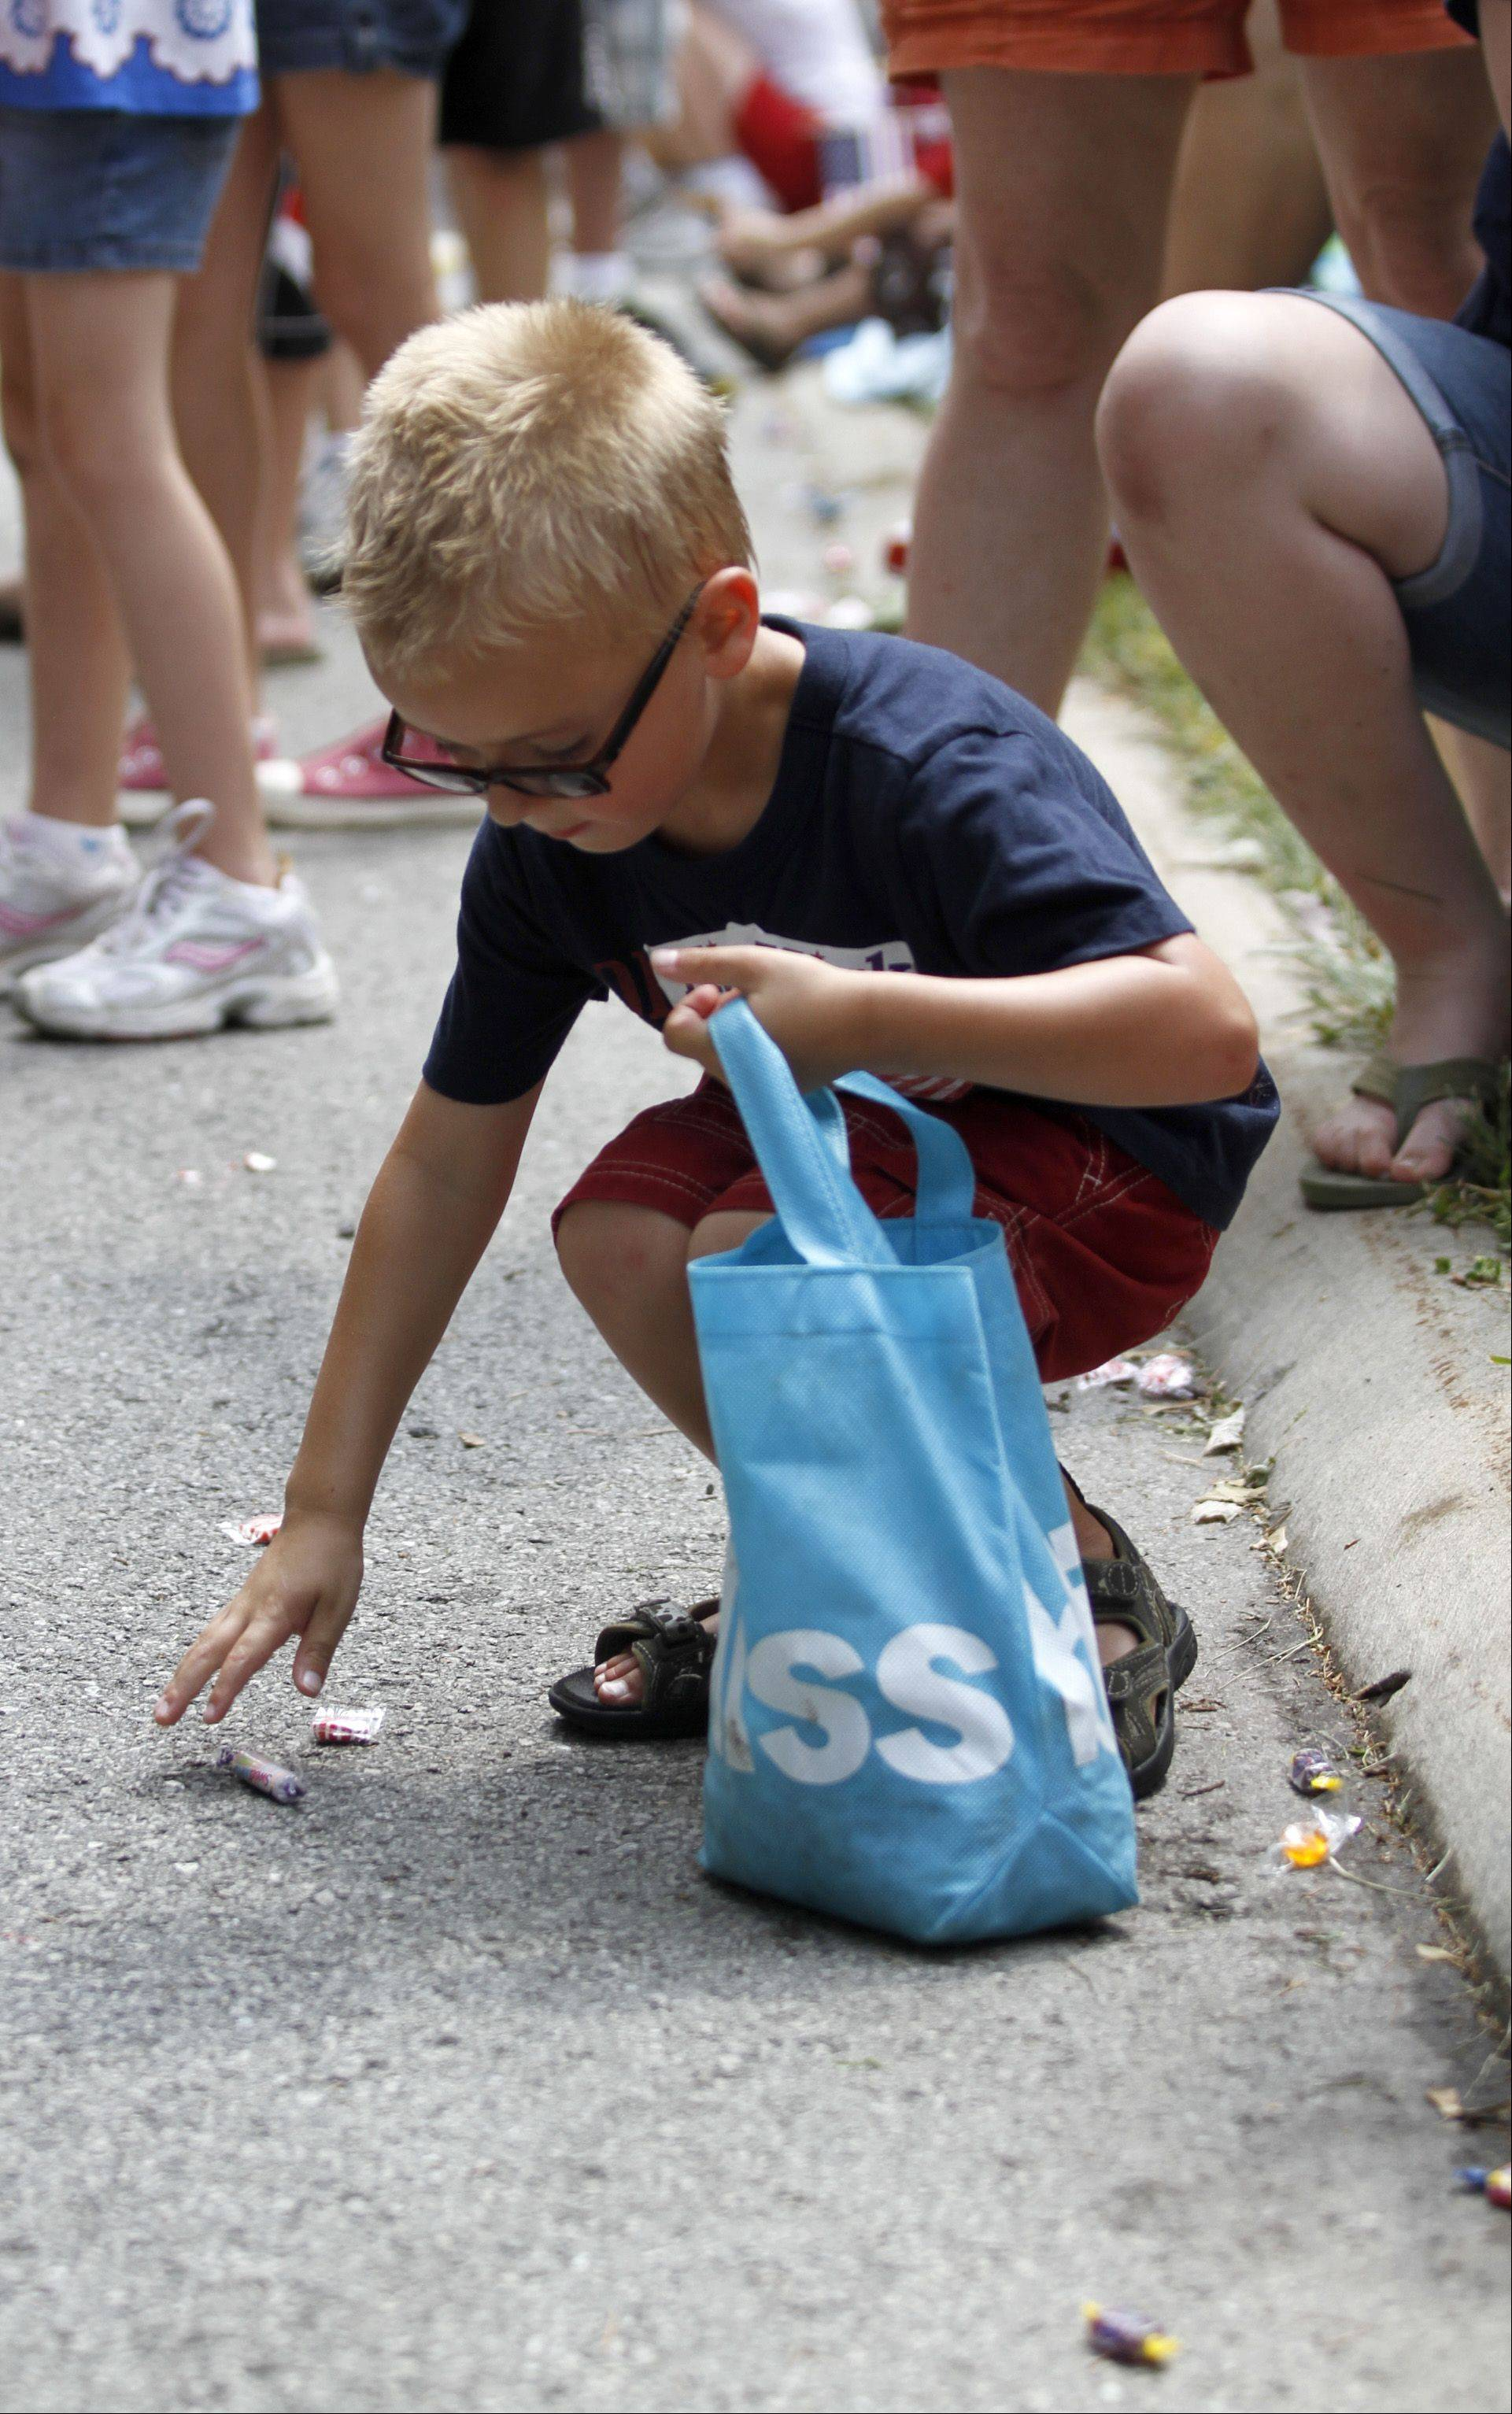 Jonathan Kravchuk, 5, from Rolling Meadows, picks up candy thrown toward him during the annual Palatine Jaycees Independence Day Parade Saturday morning.